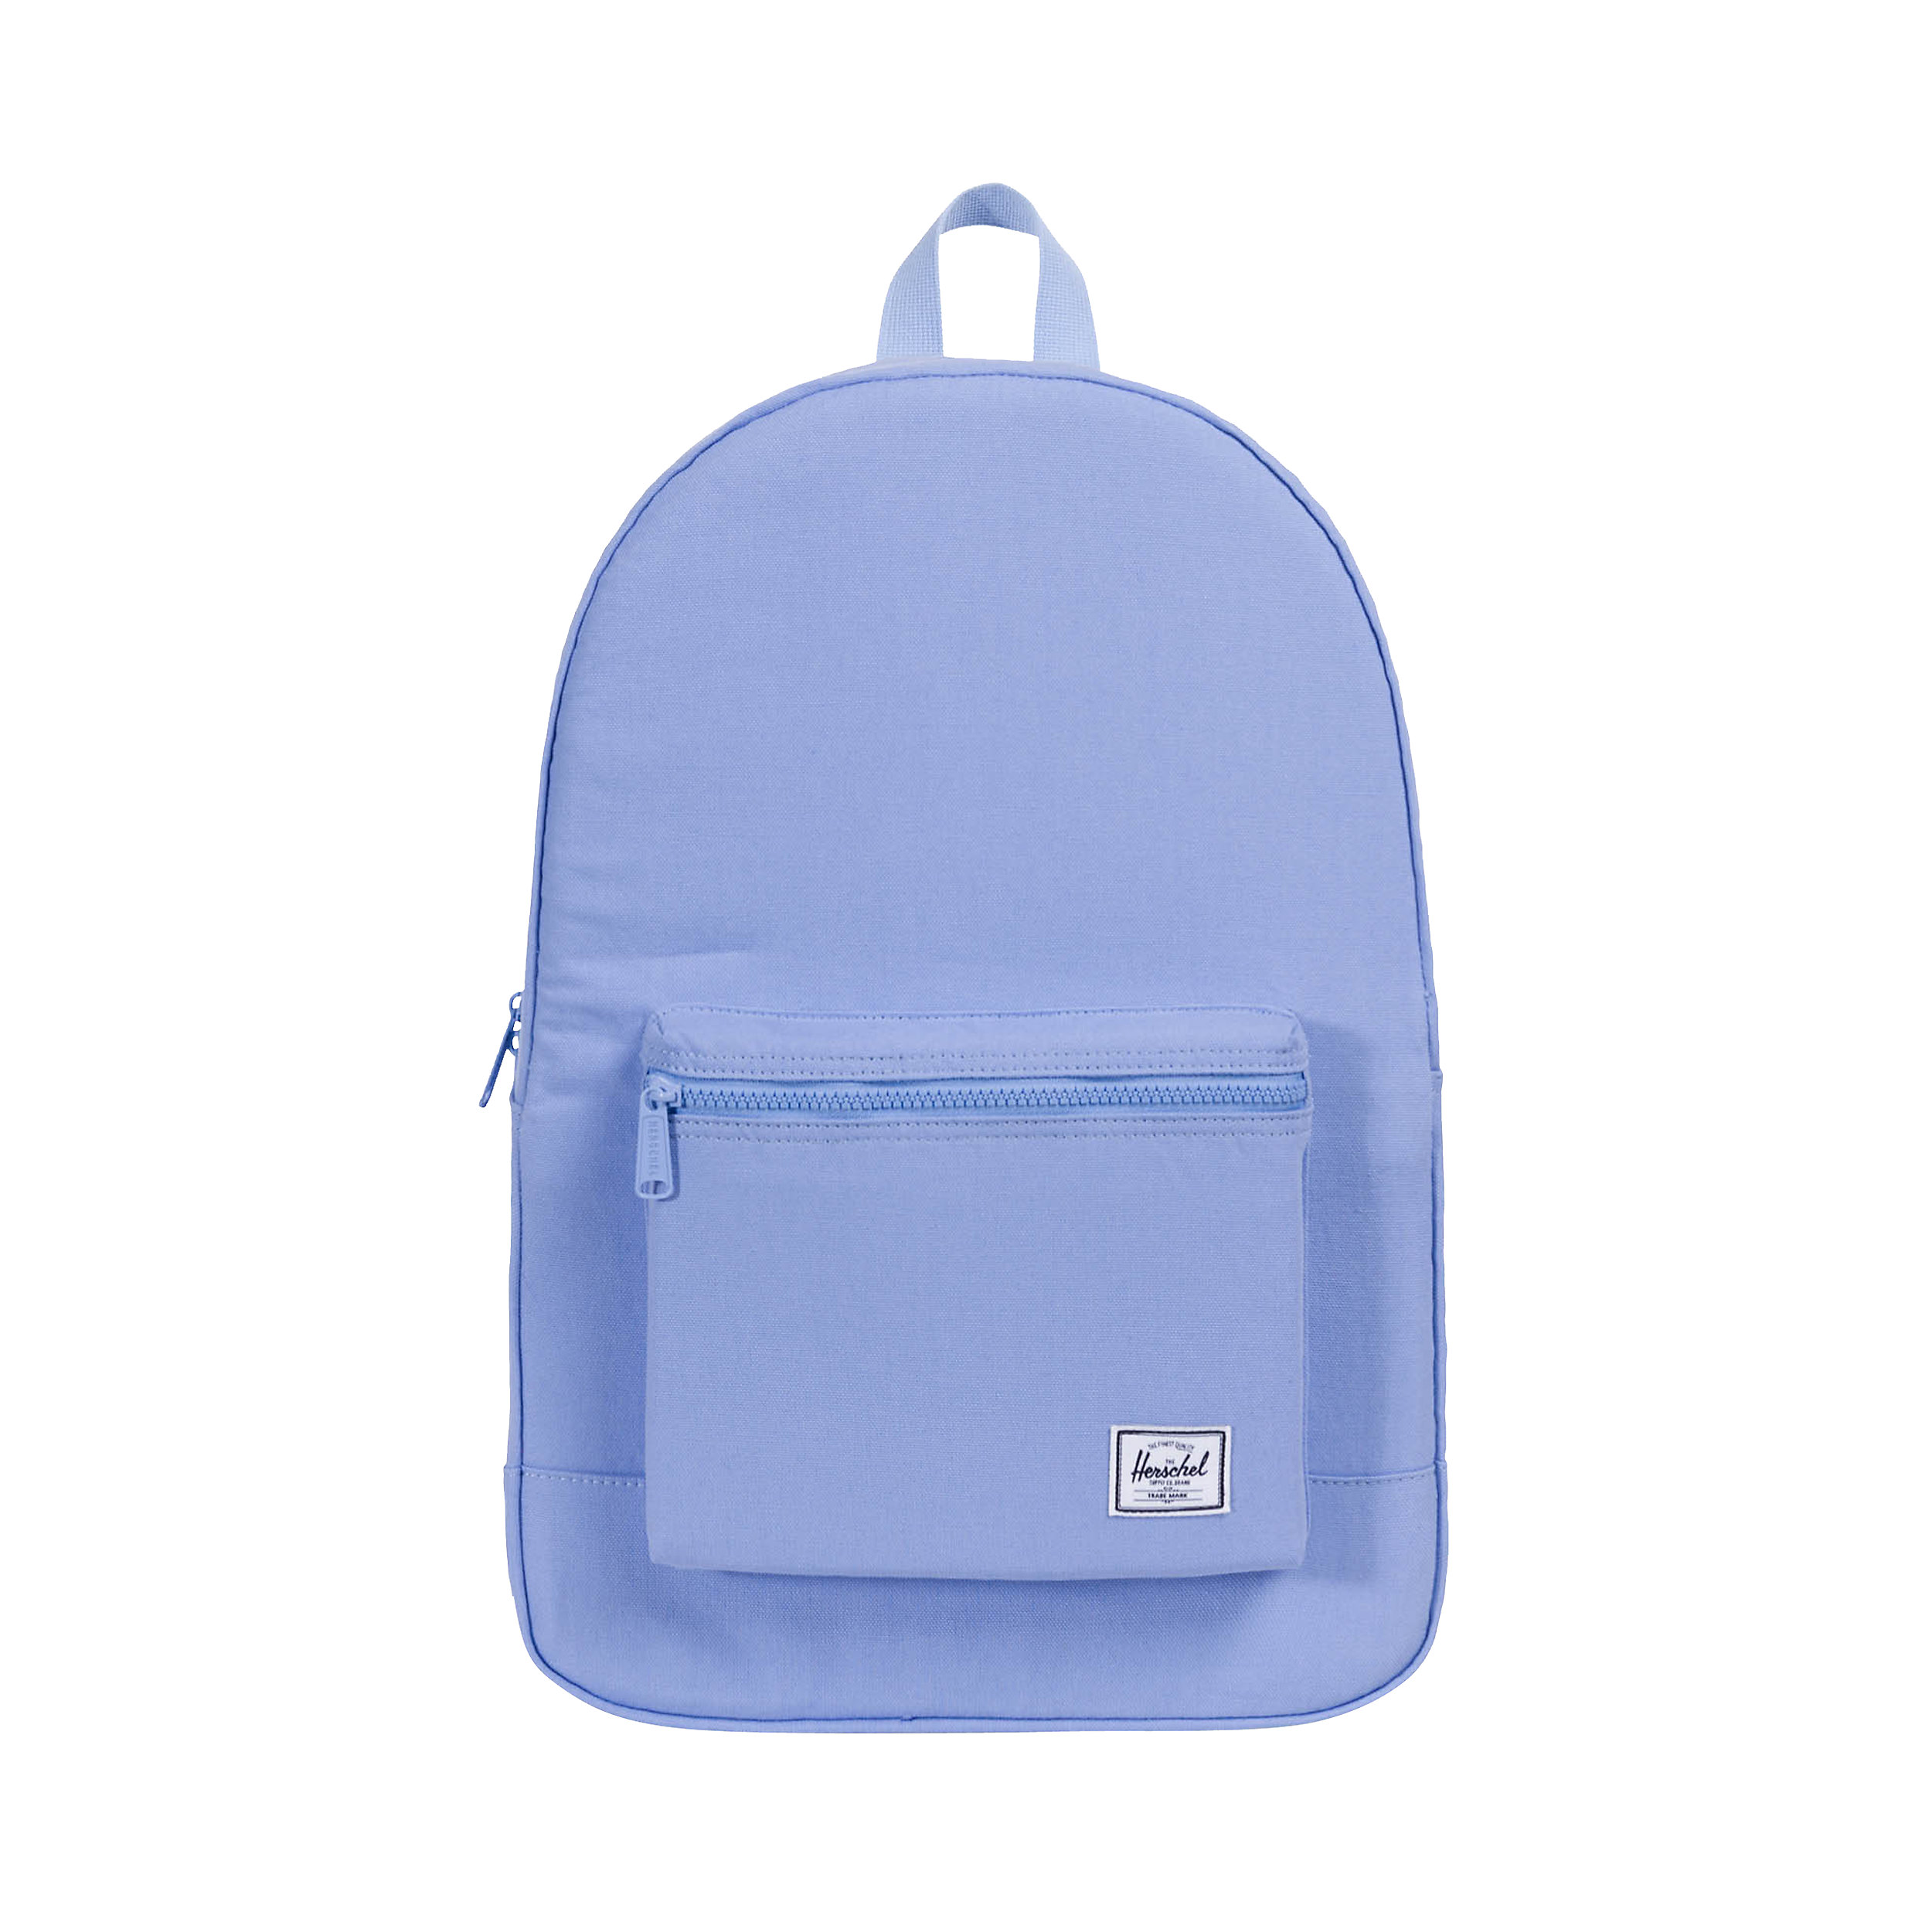 Backpack Packable Daypack Cotton Casuals 24.5 Liter